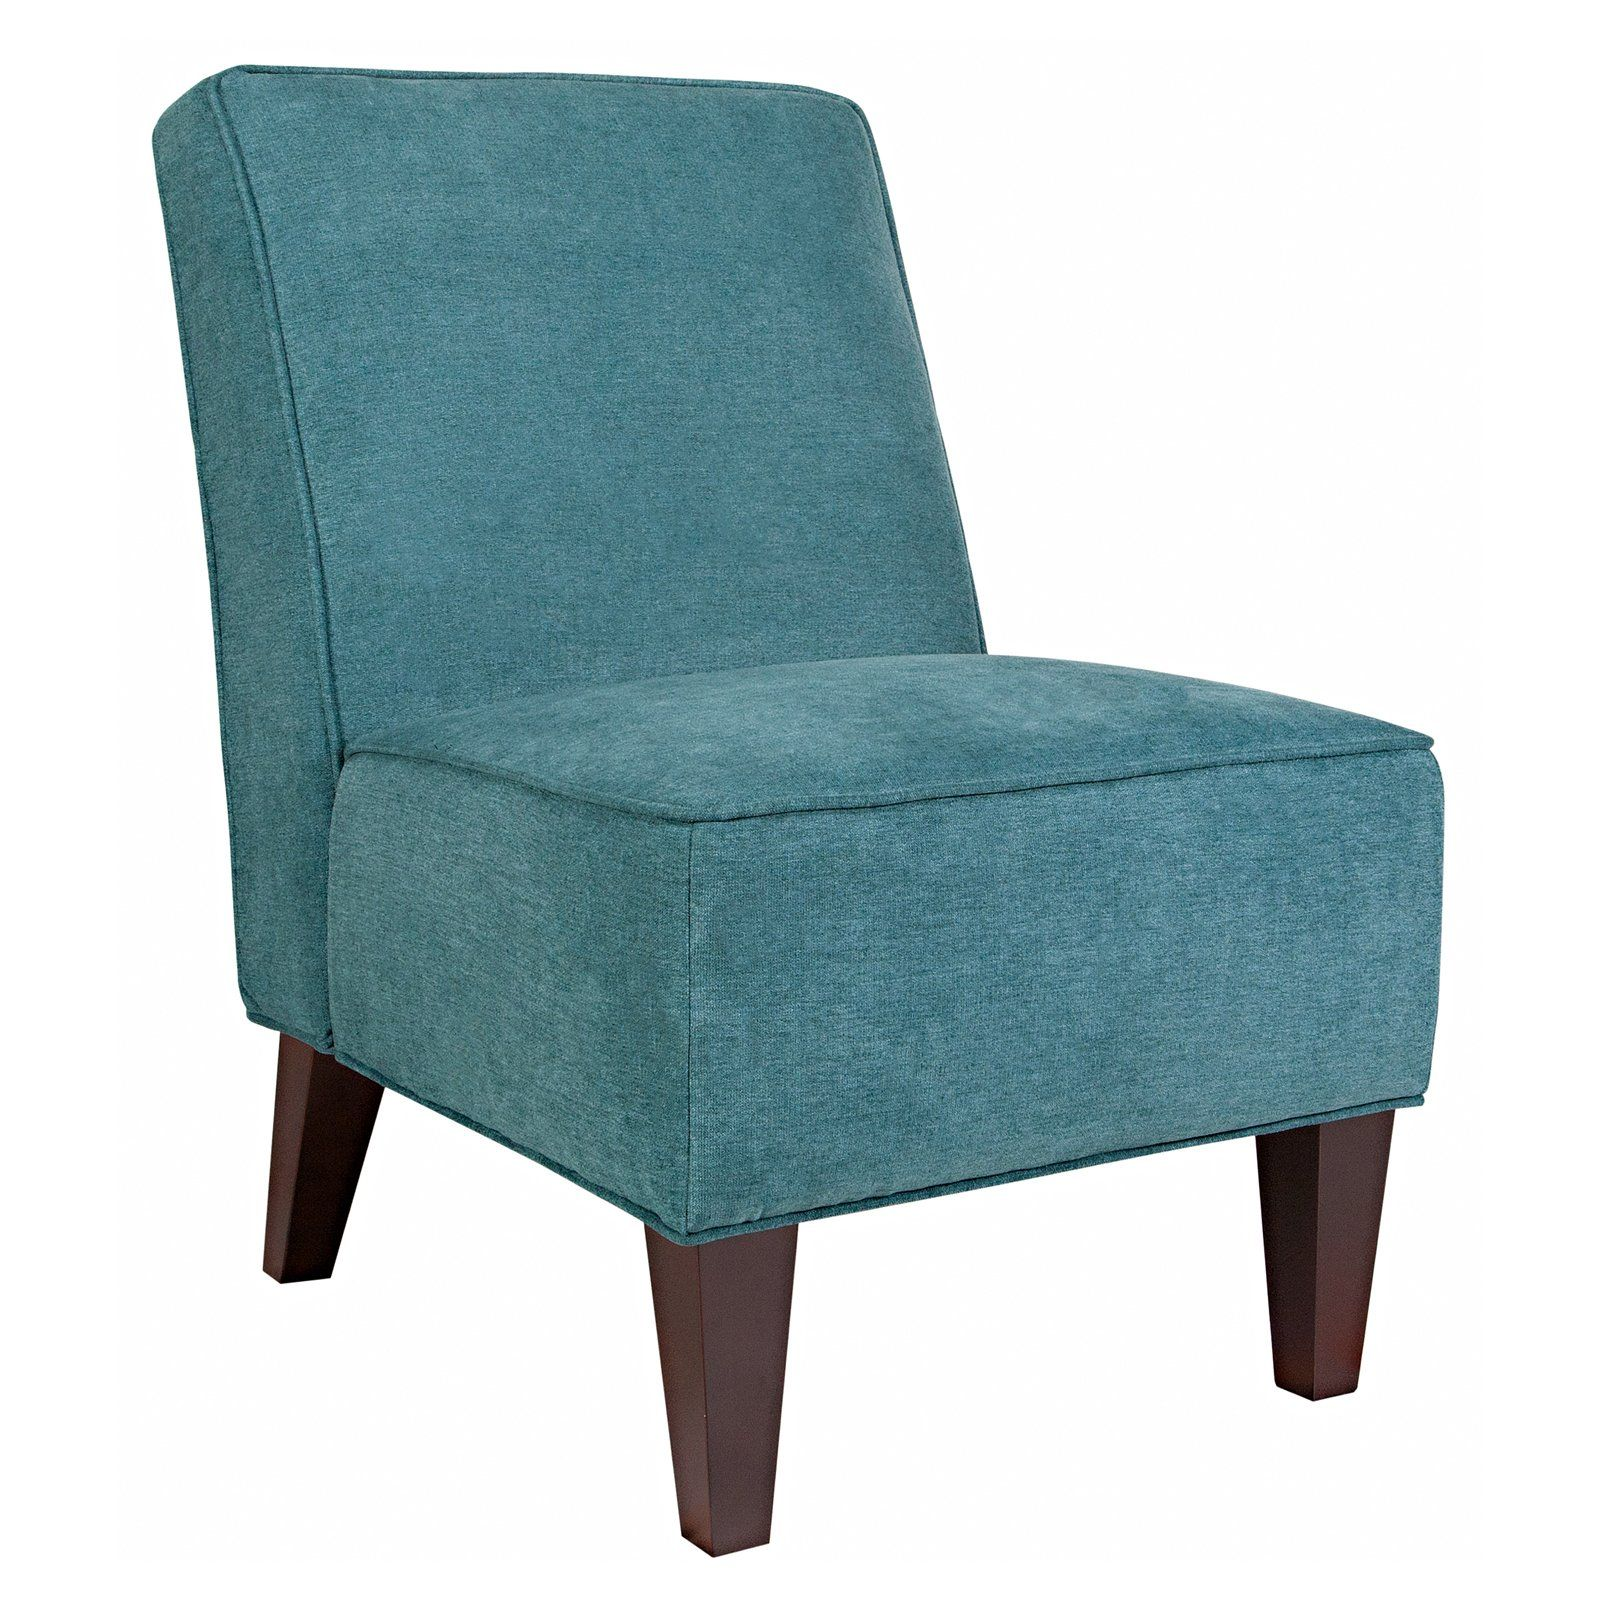 Comfortable Wooden Accent Chairs Under 200 With Beautiful Blue